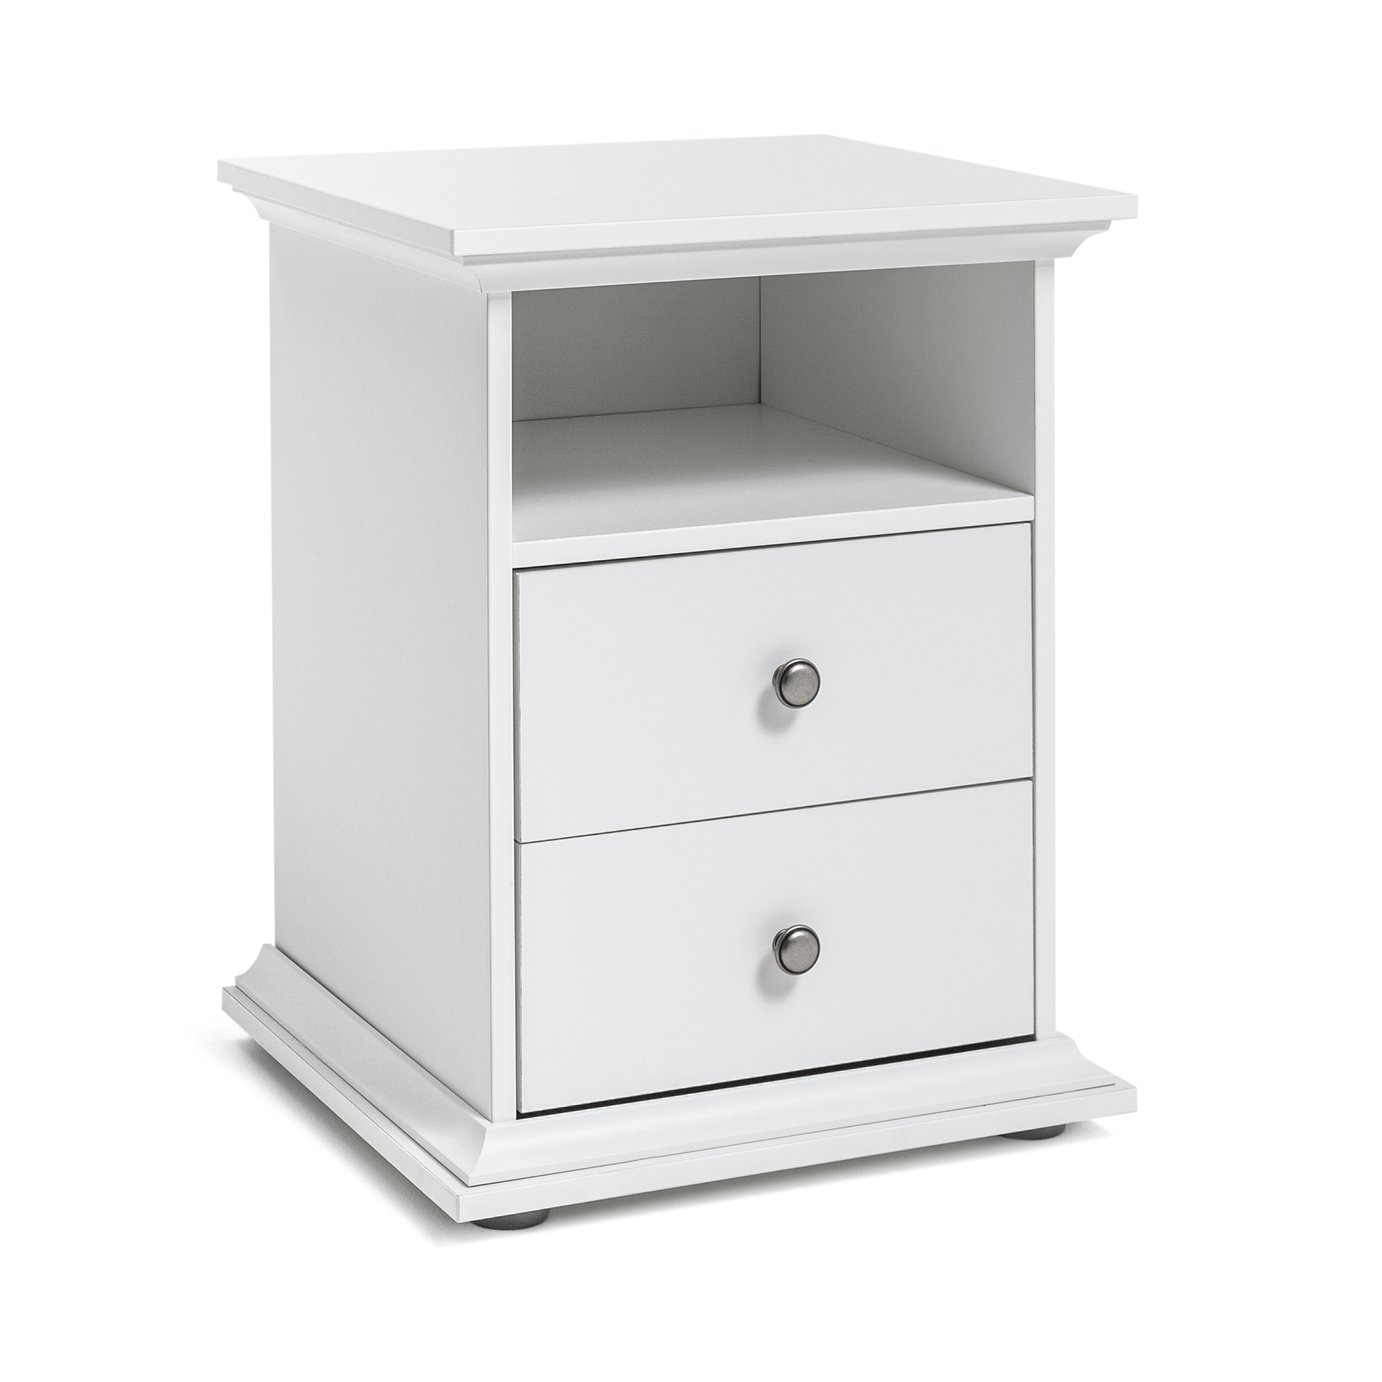 Argos Home Heathland 2 Drawer Bedside Cabinet - White